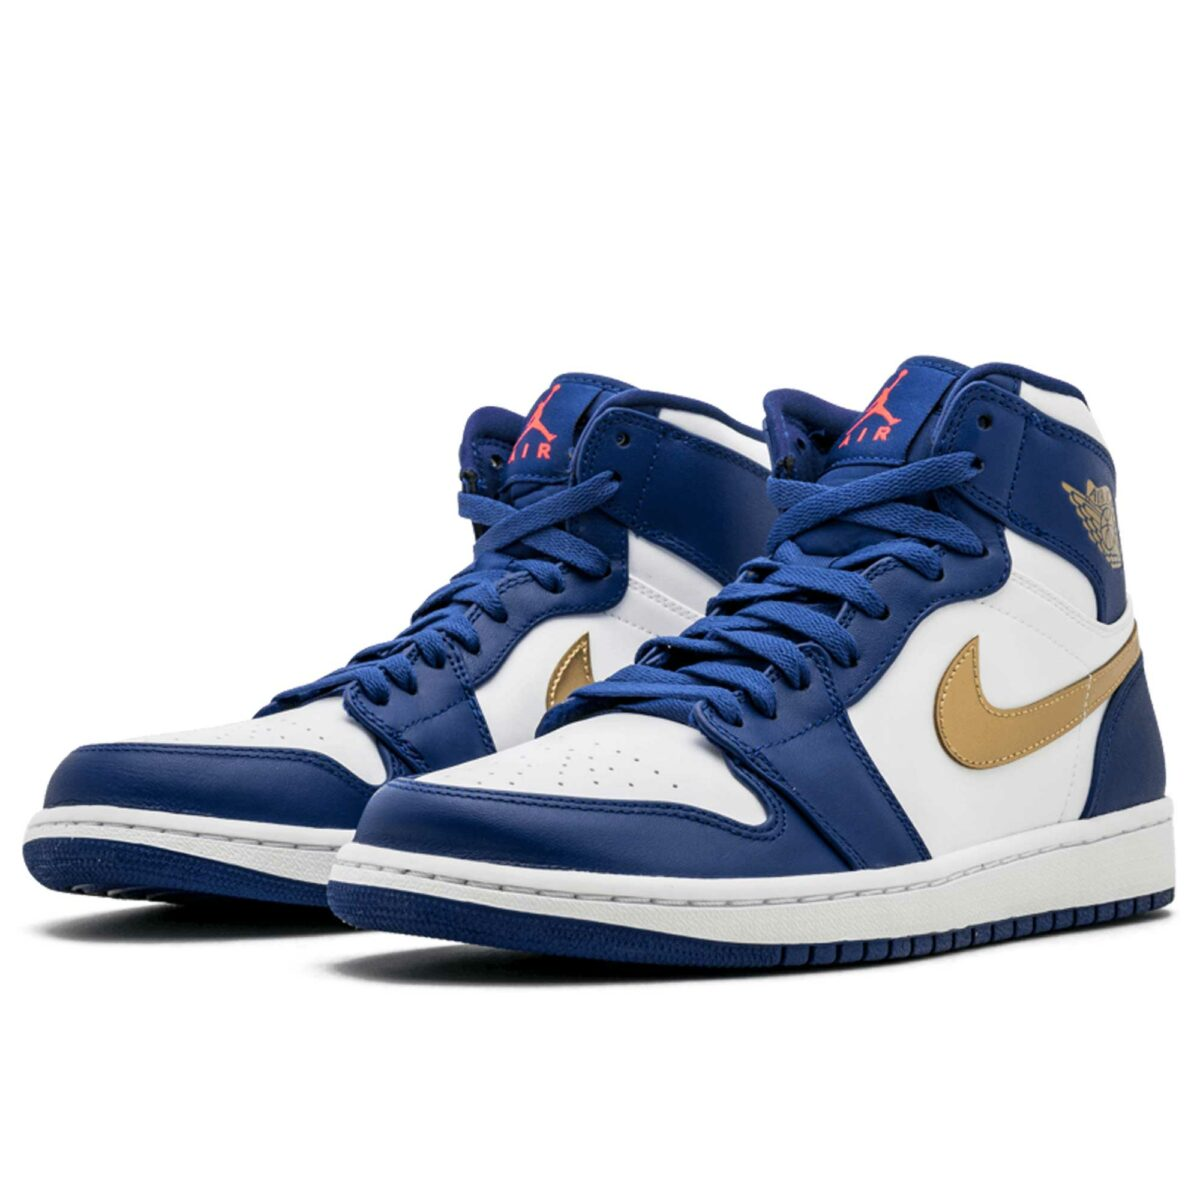 nike air Jordan 1 retro og blue white 332550_406 купить